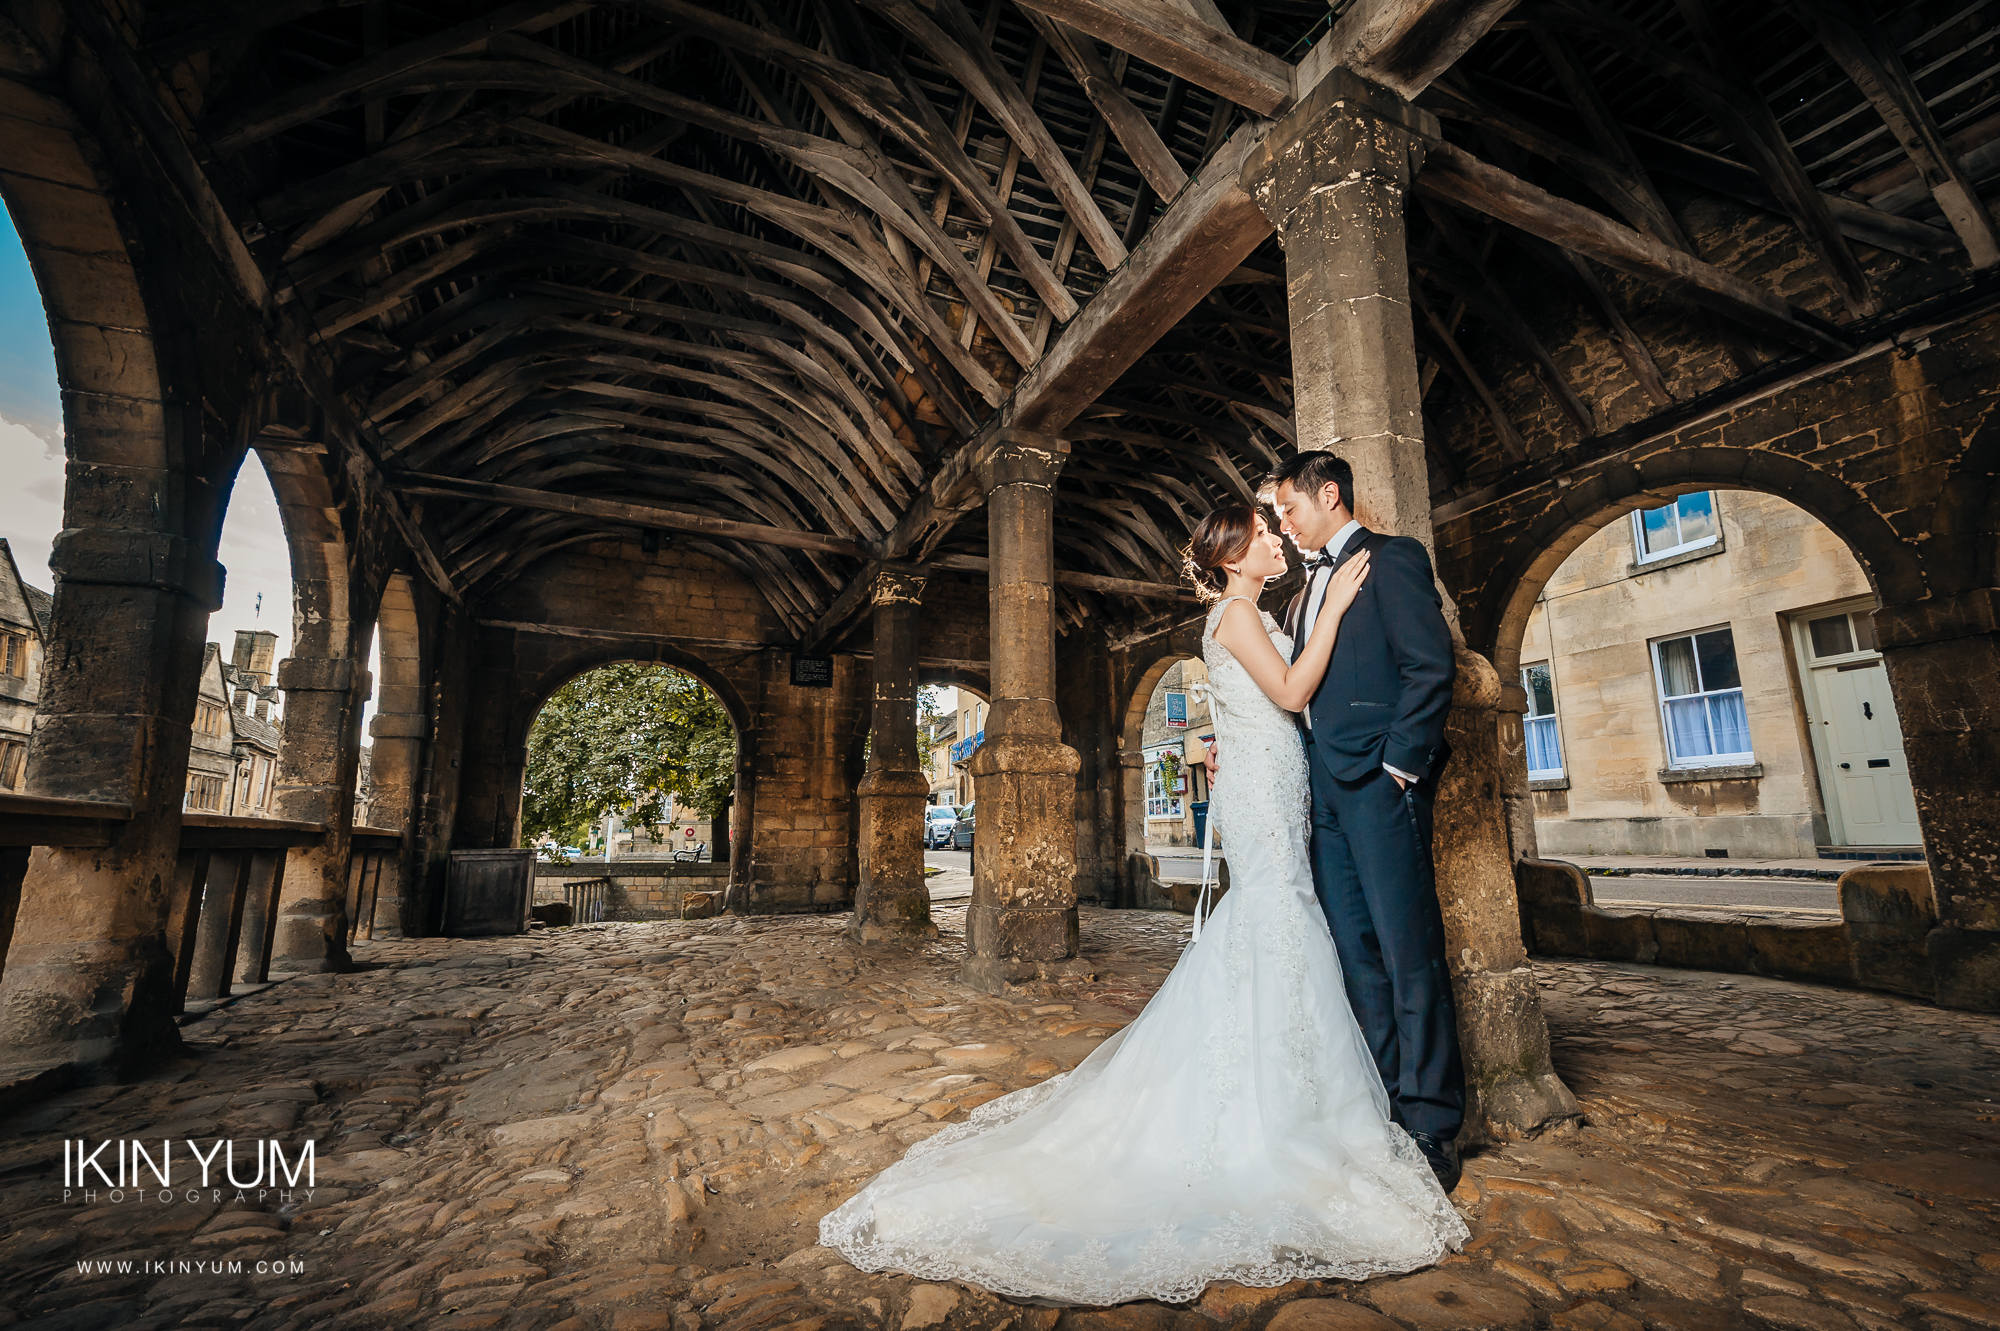 Cotswolds Pre-Wedding Shoot UK - London Wedding photographer -  英国伦敦婚纱摄影